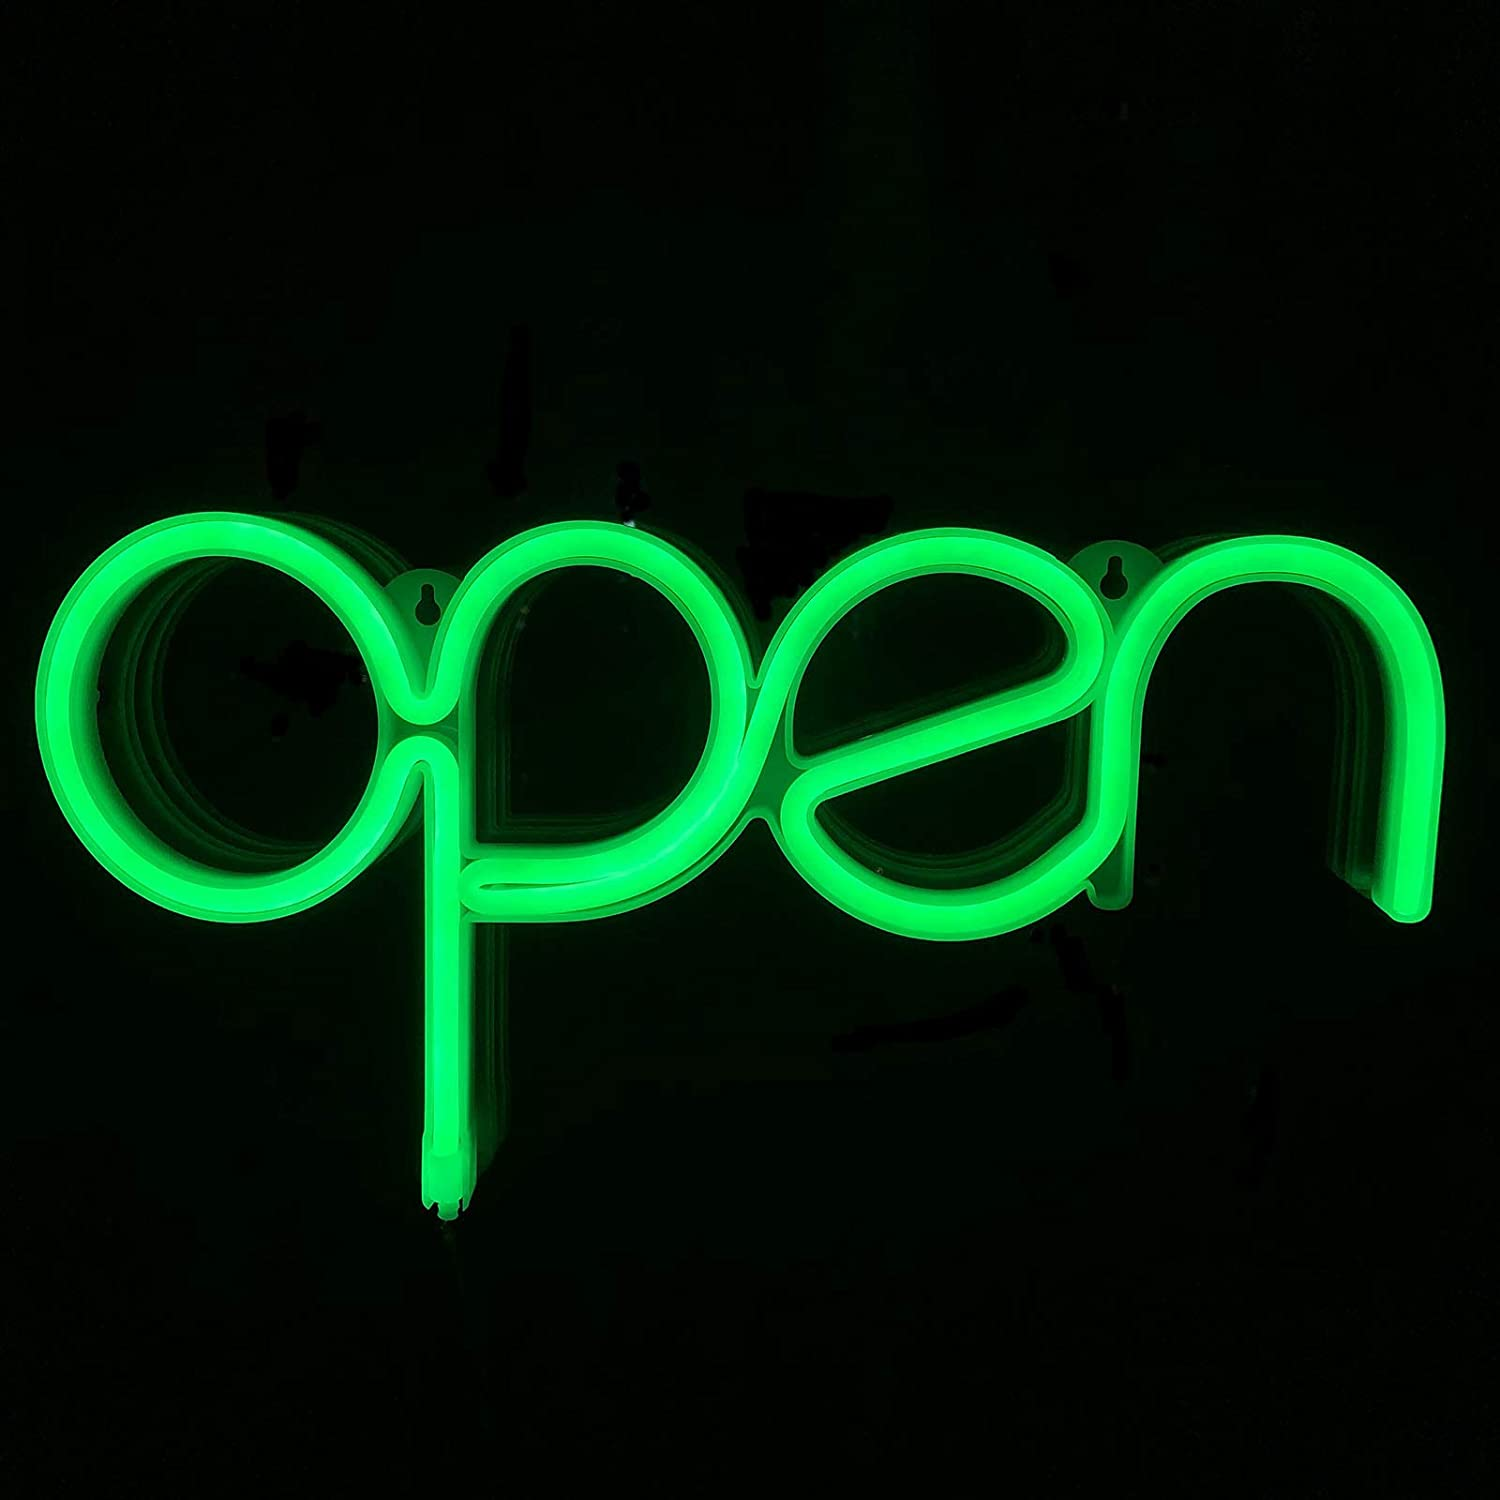 Open Neon Sign for Window Displaying Light 15.5x8.4 inch,Long Cord 11.5 FT LED Green Open Sign for Business,CBD Dispensary,Massage,Tattoo Store,Bar,Man Cave,Barber Shop,Retail Store(OG)